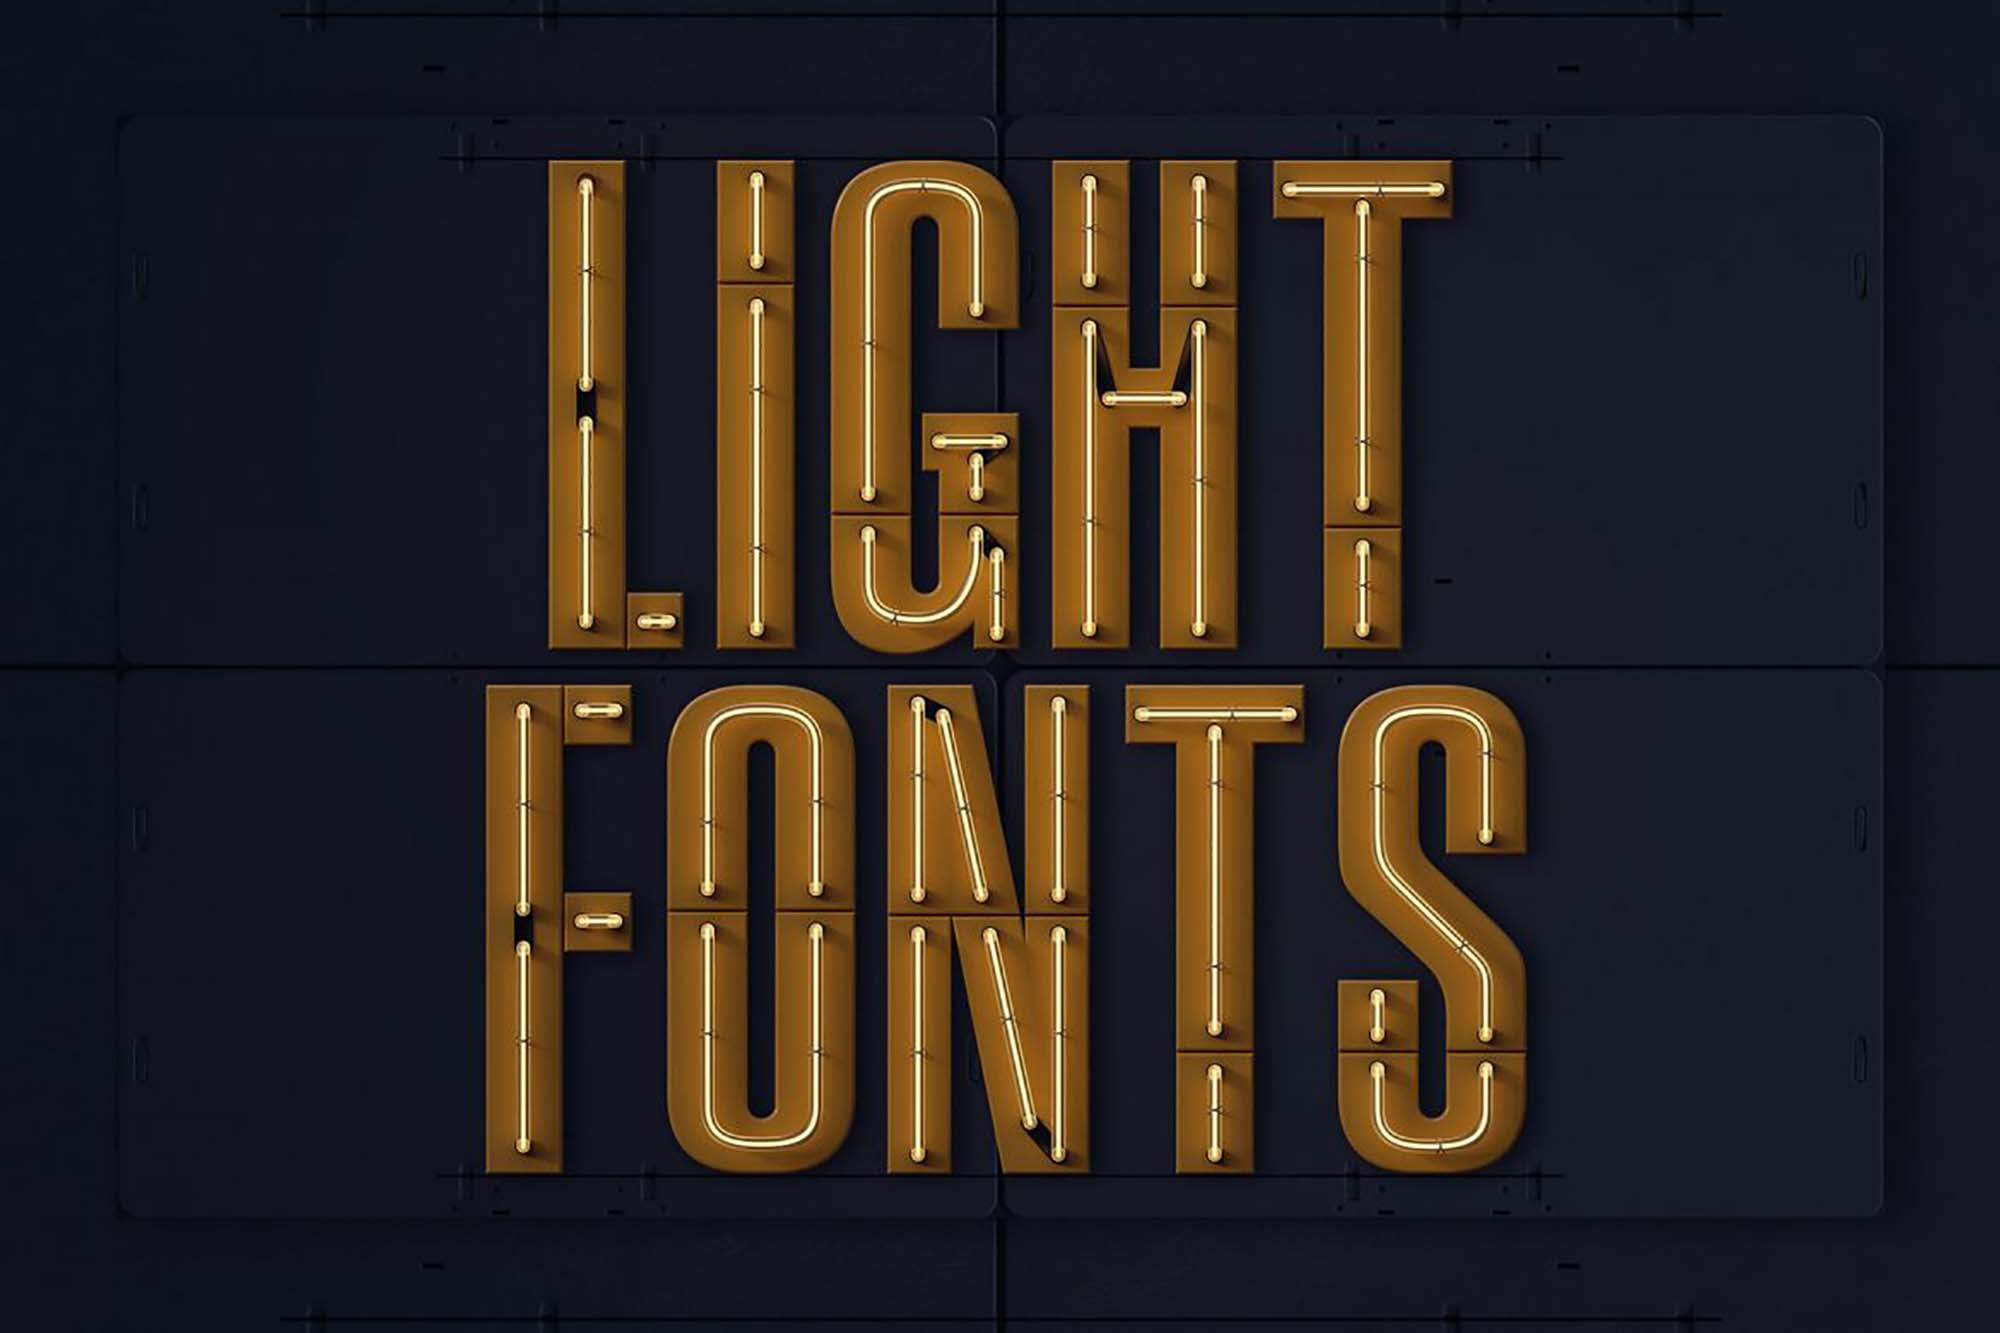 Condensed Neon 3D Lettering 1